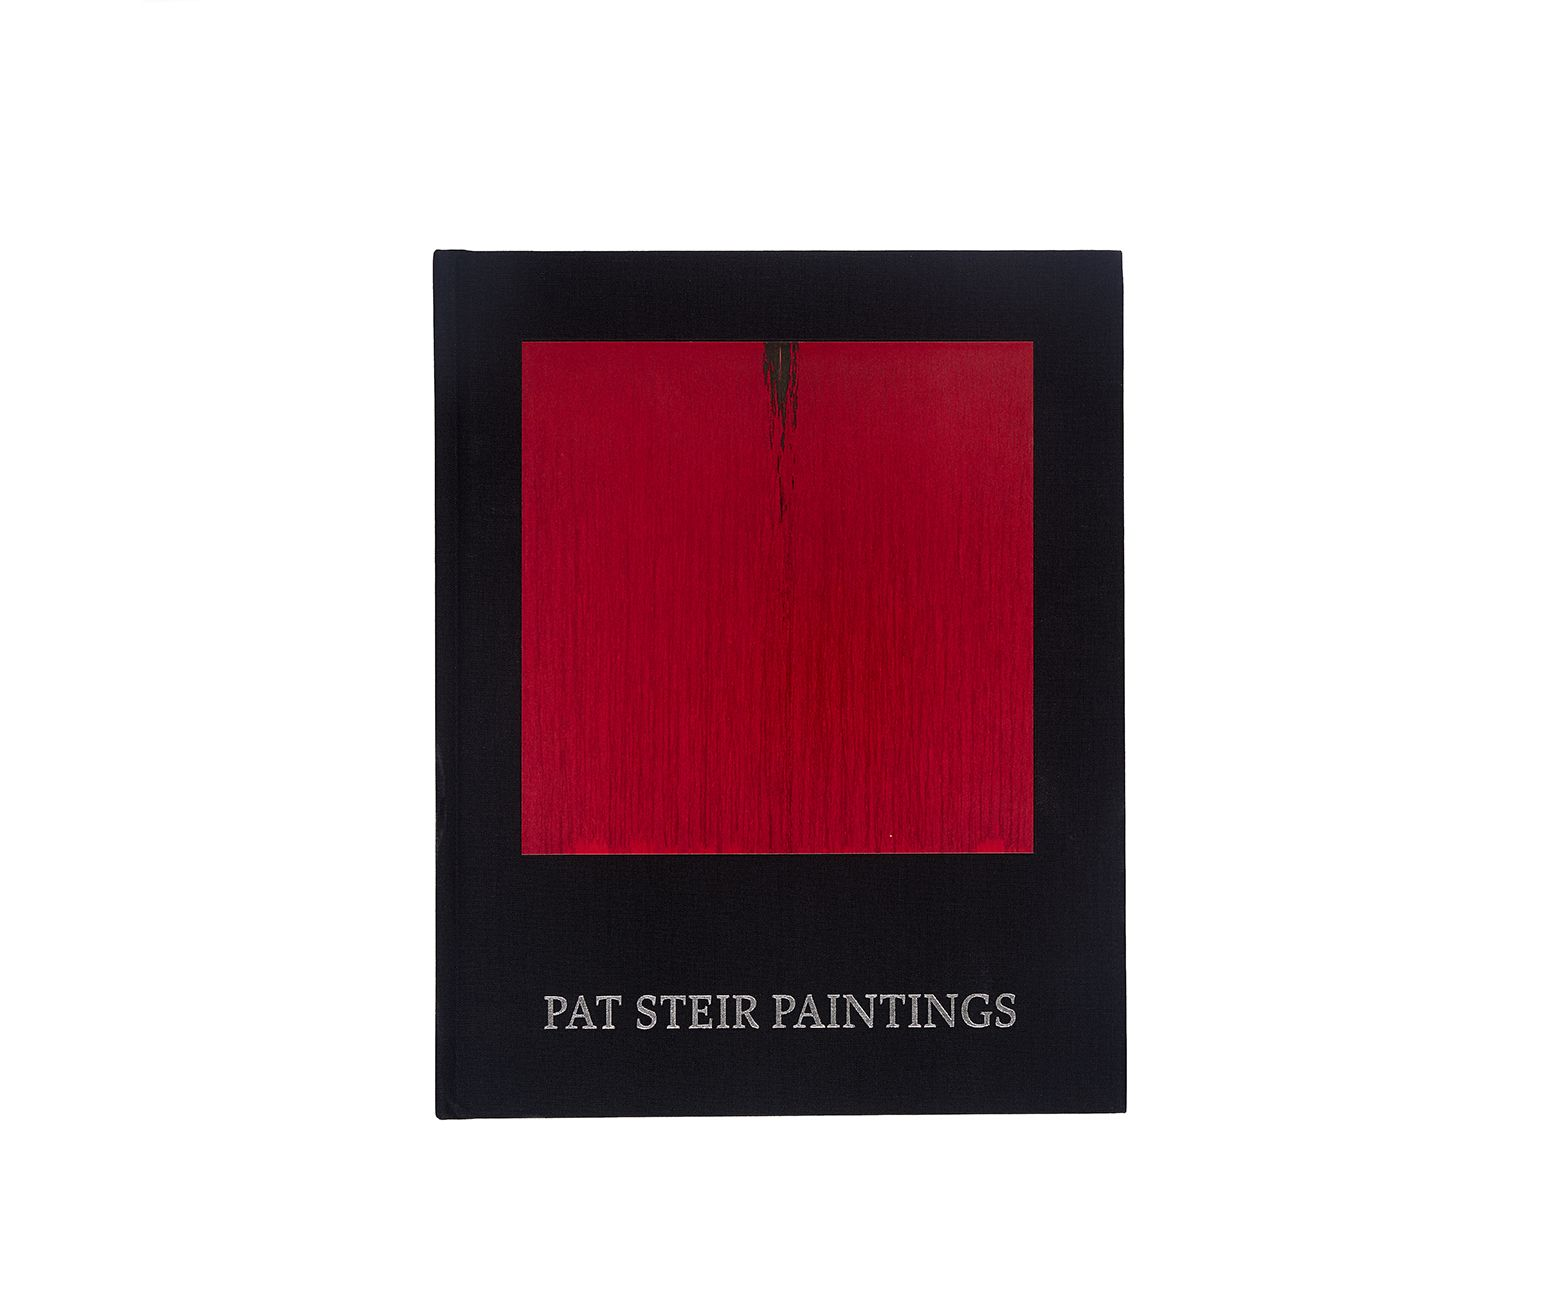 Image of Pat Steir: Paintings Catalogue cover